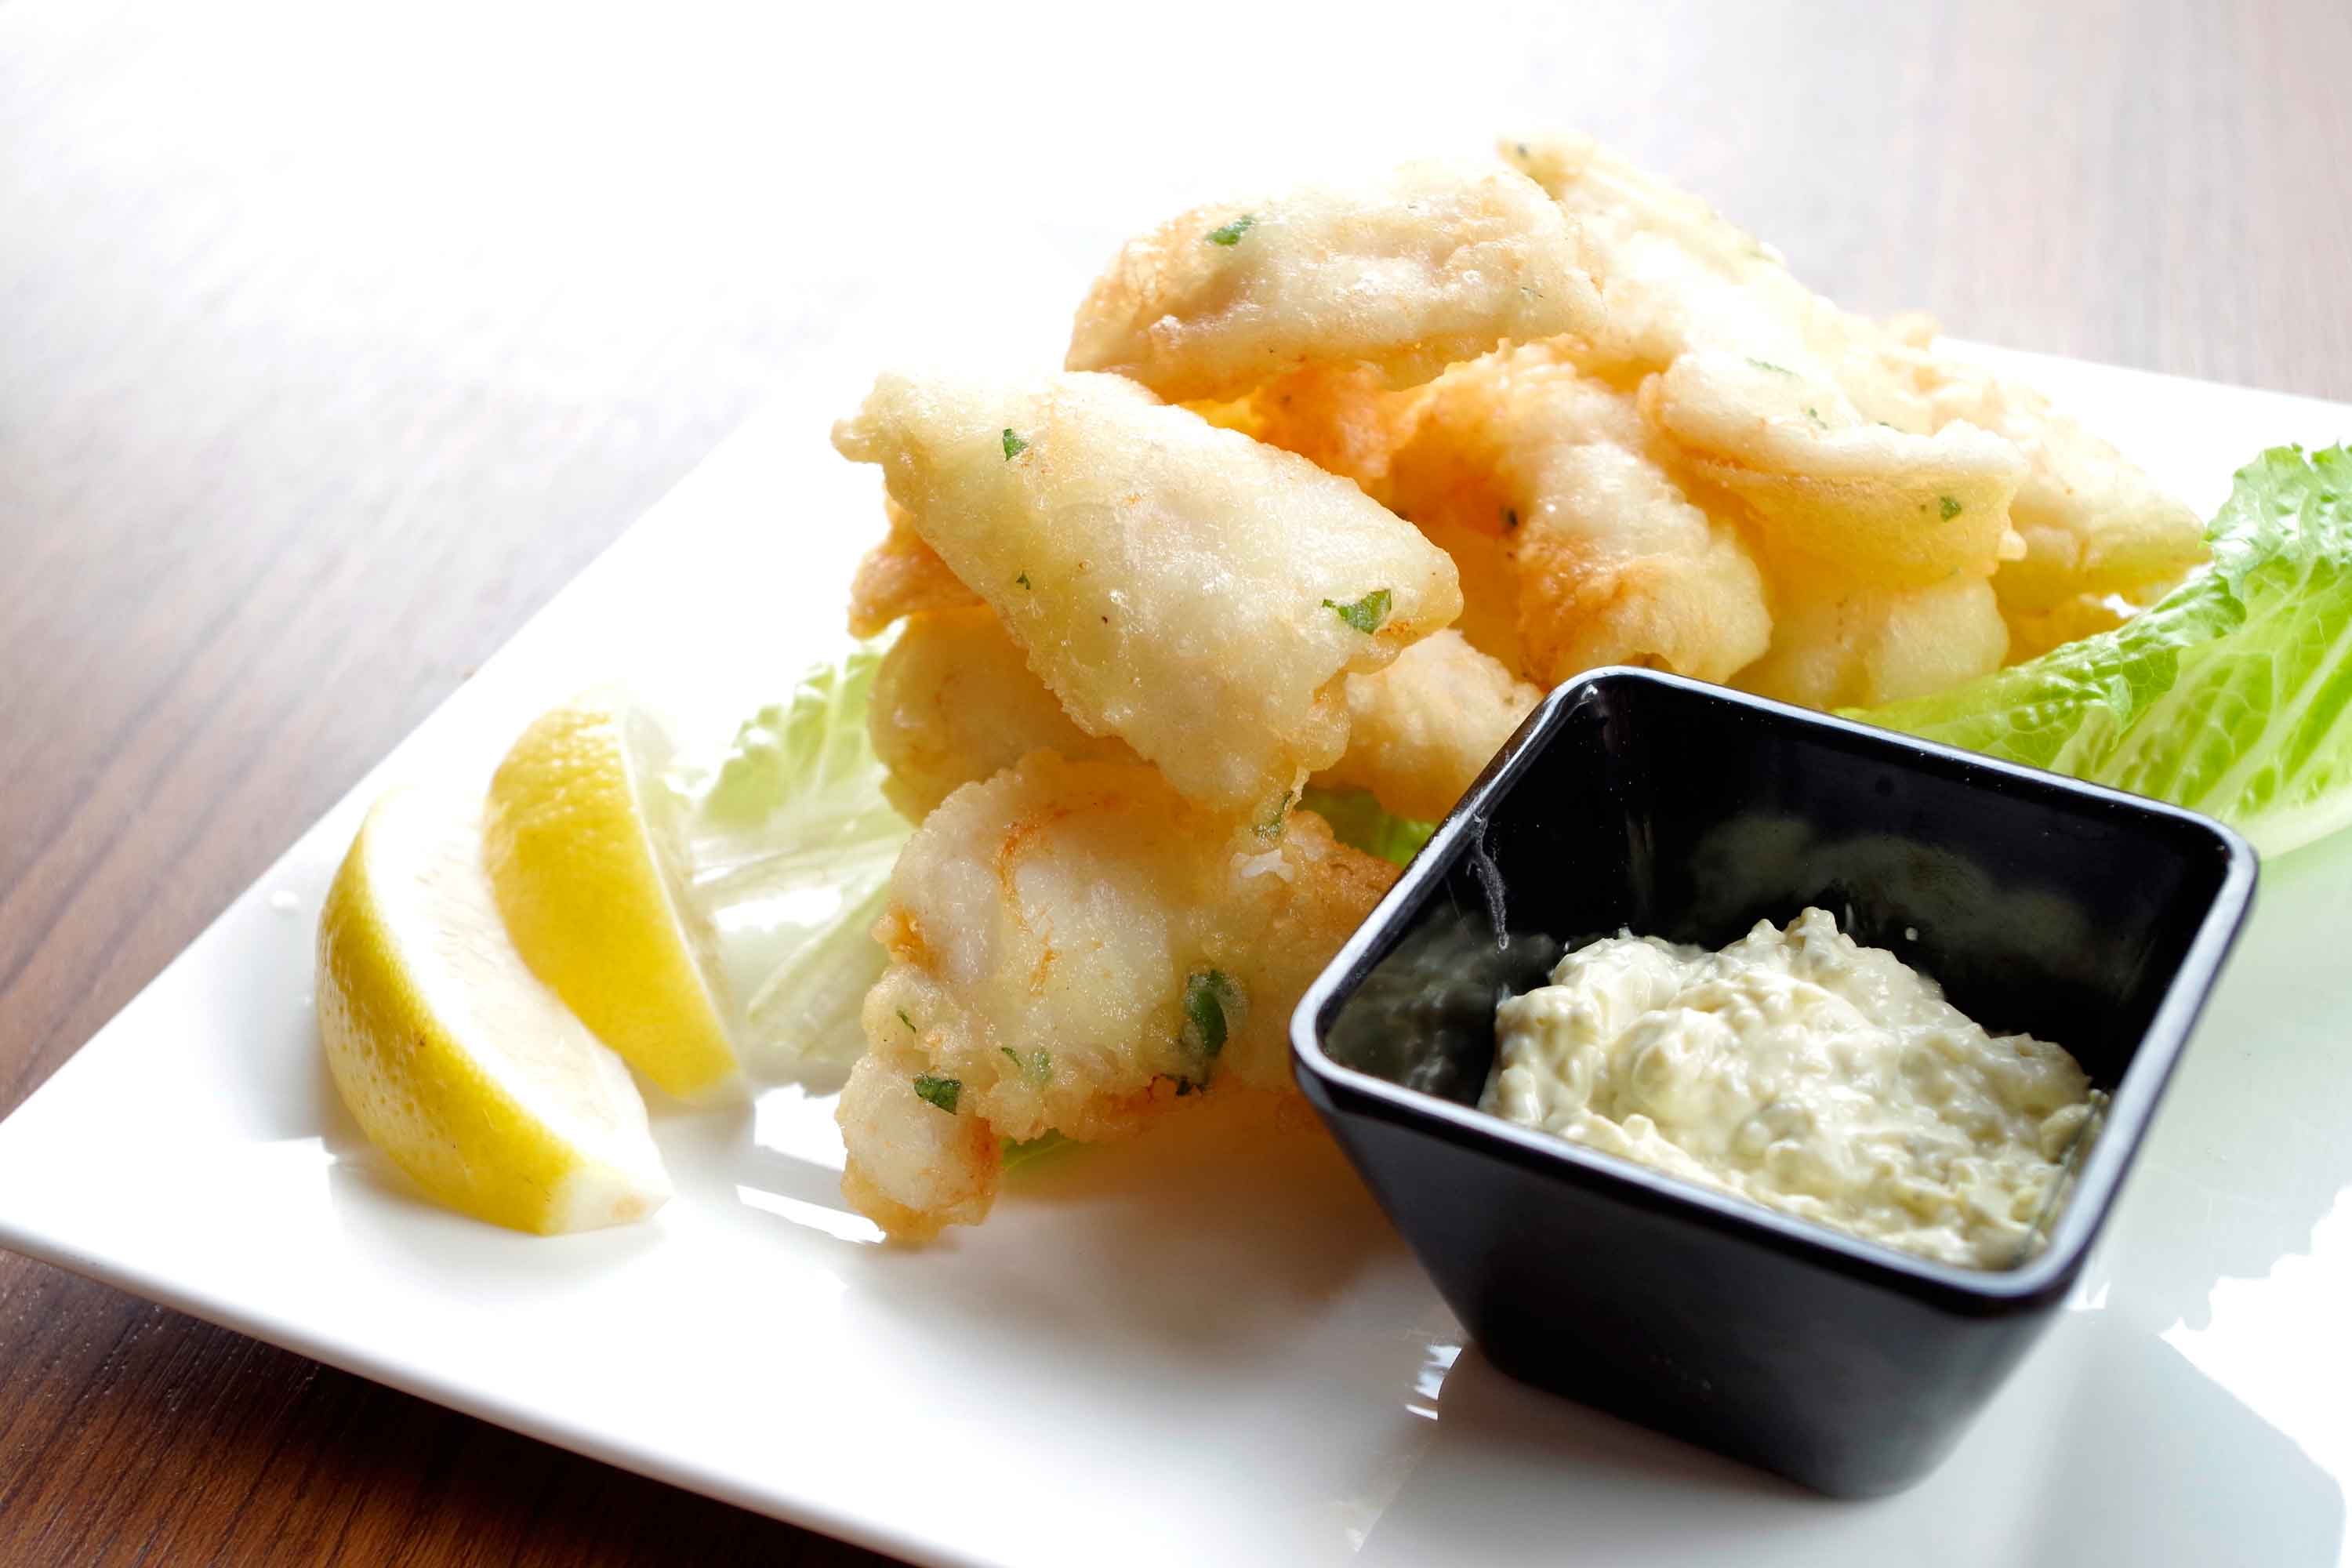 DiVino Patio - Deep-fried calamari with tartar sauce